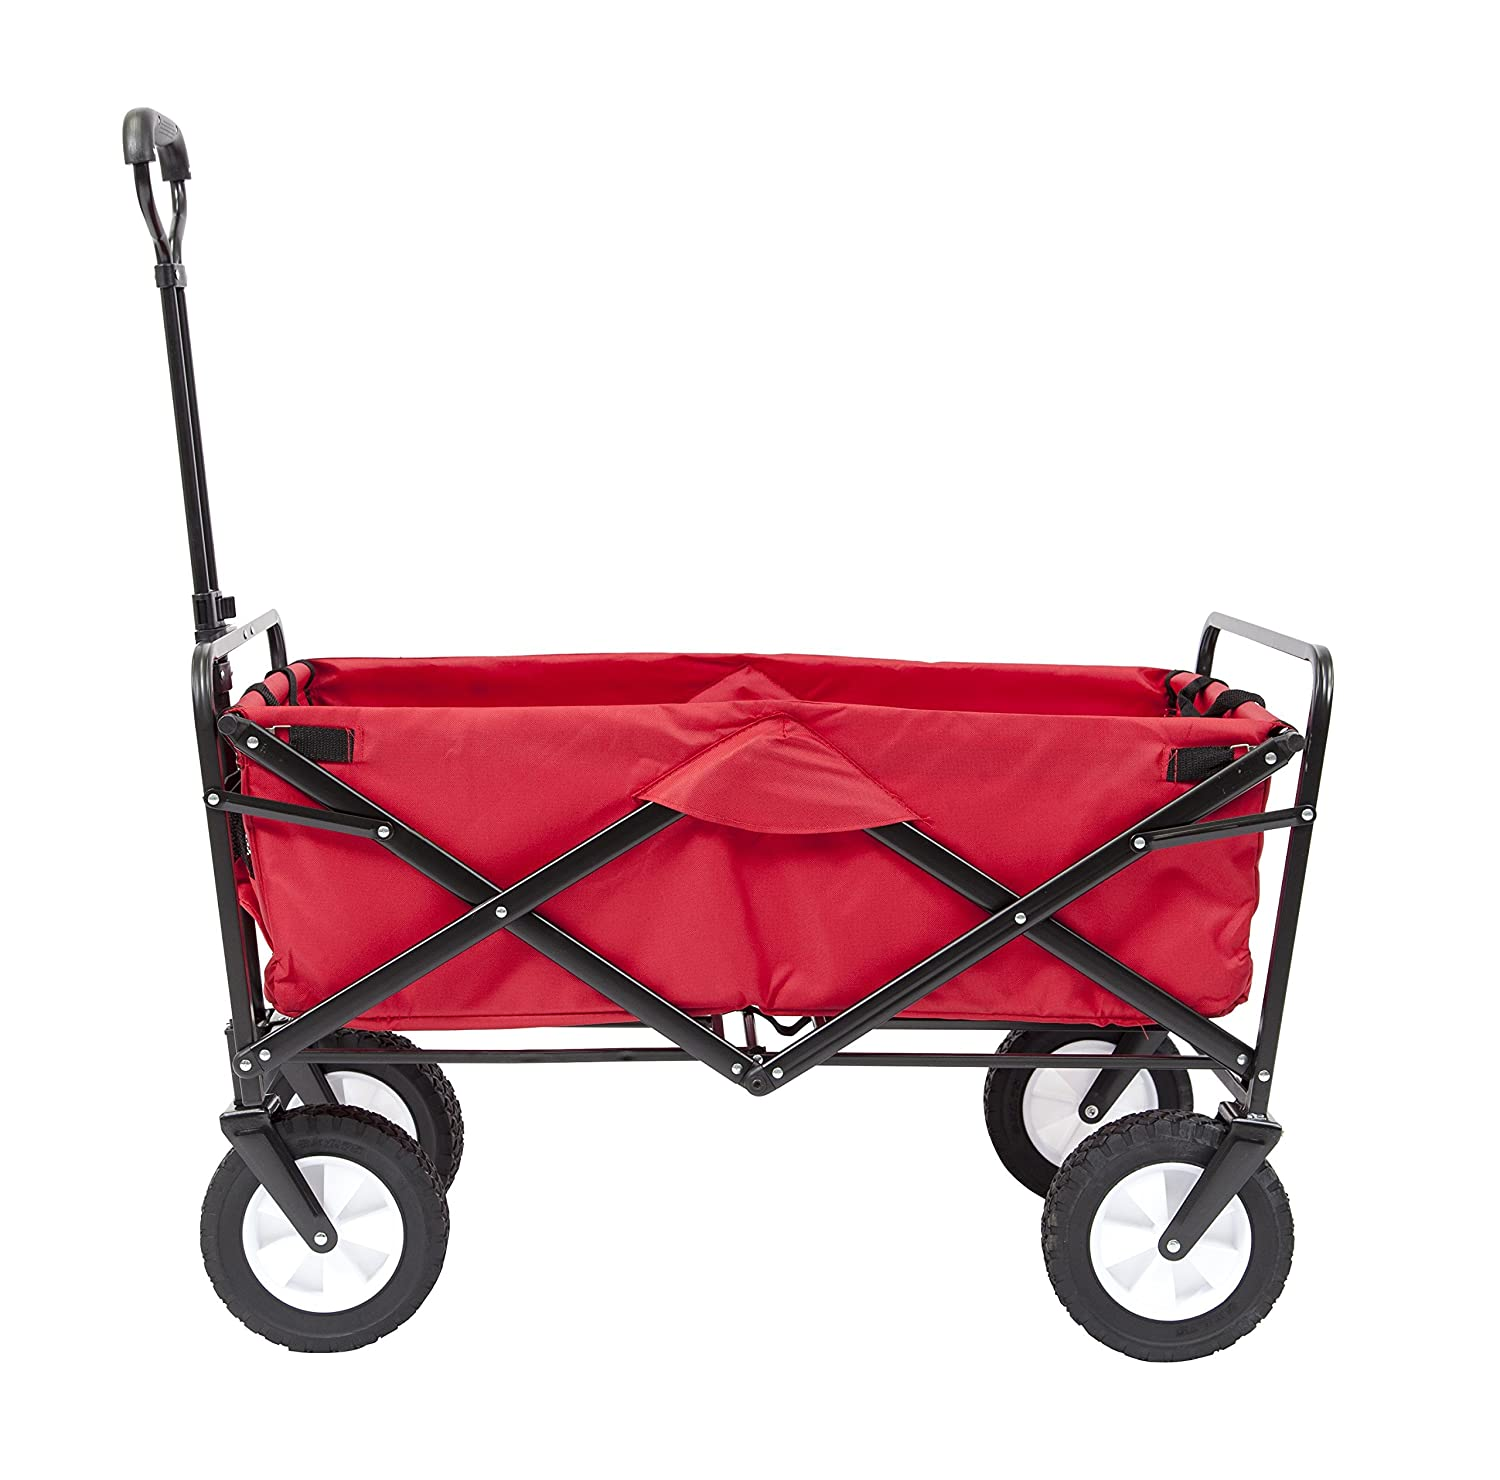 Top 10 Best Wagons for Kids Reviews in 2020 7